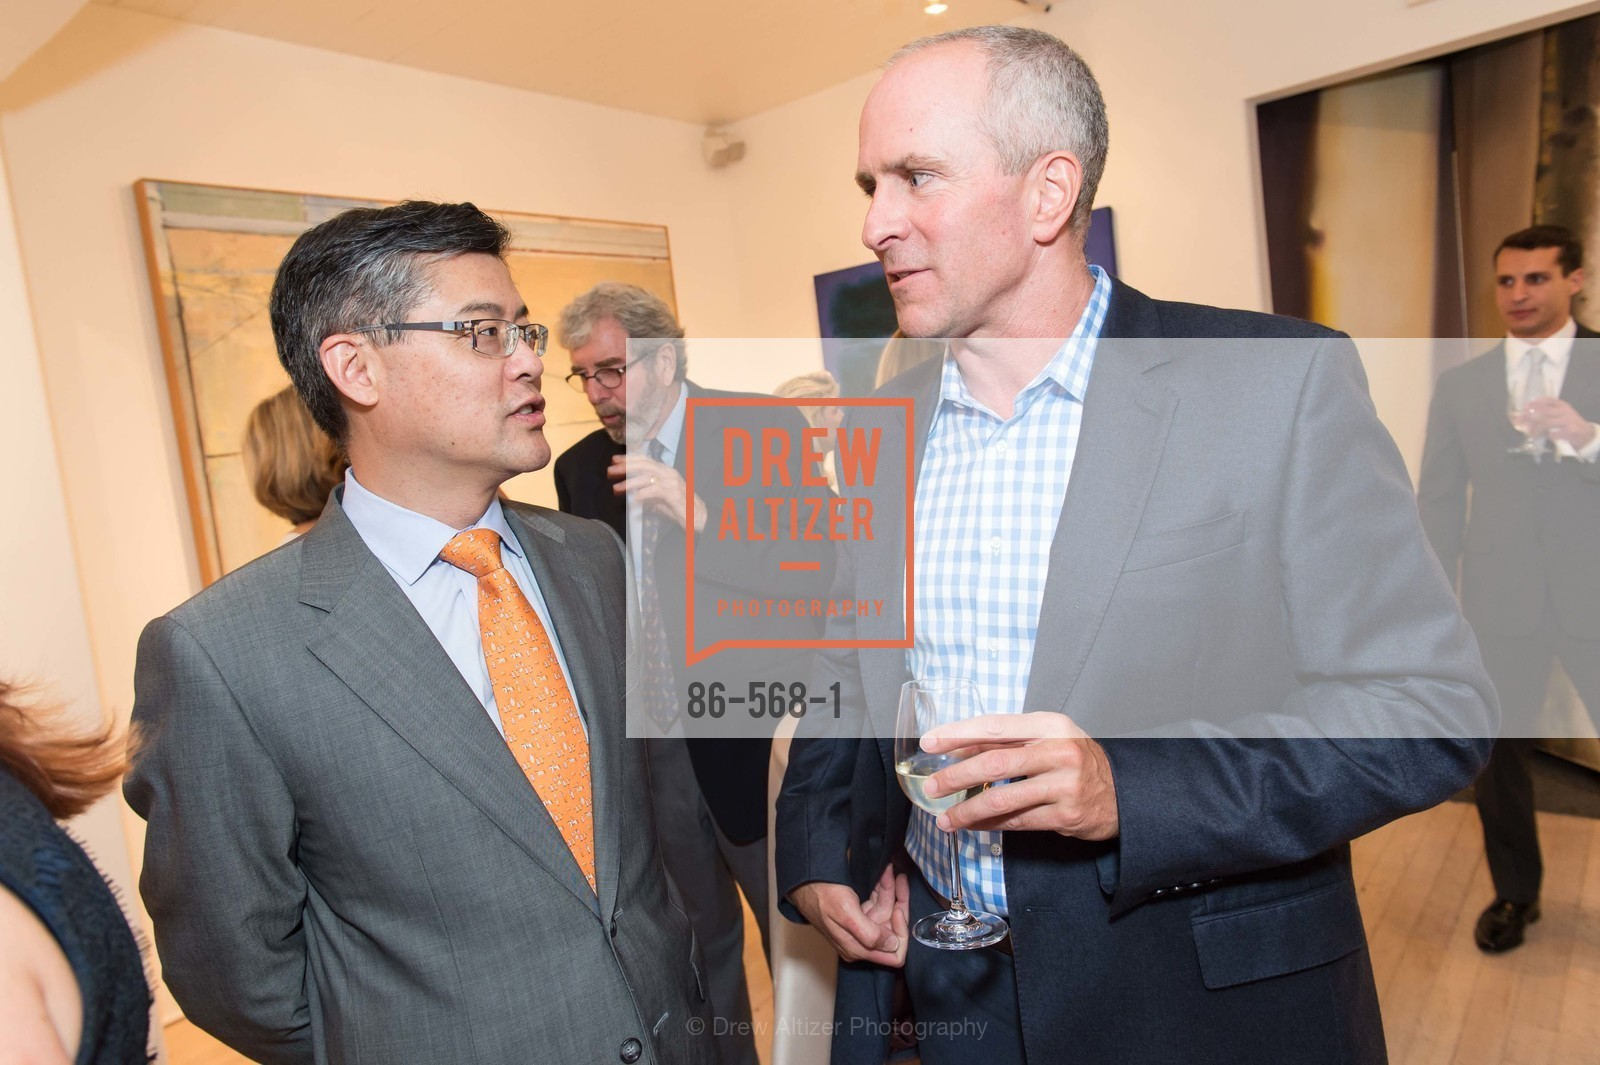 Jay Xu, Jay Backstrand, SOTHEBY'S  Hosts a Private Viewing of Highlights from the Collection of MRS. PAUL MELLON, US, September 17th, 2014,Drew Altizer, Drew Altizer Photography, full-service event agency, private events, San Francisco photographer, photographer California